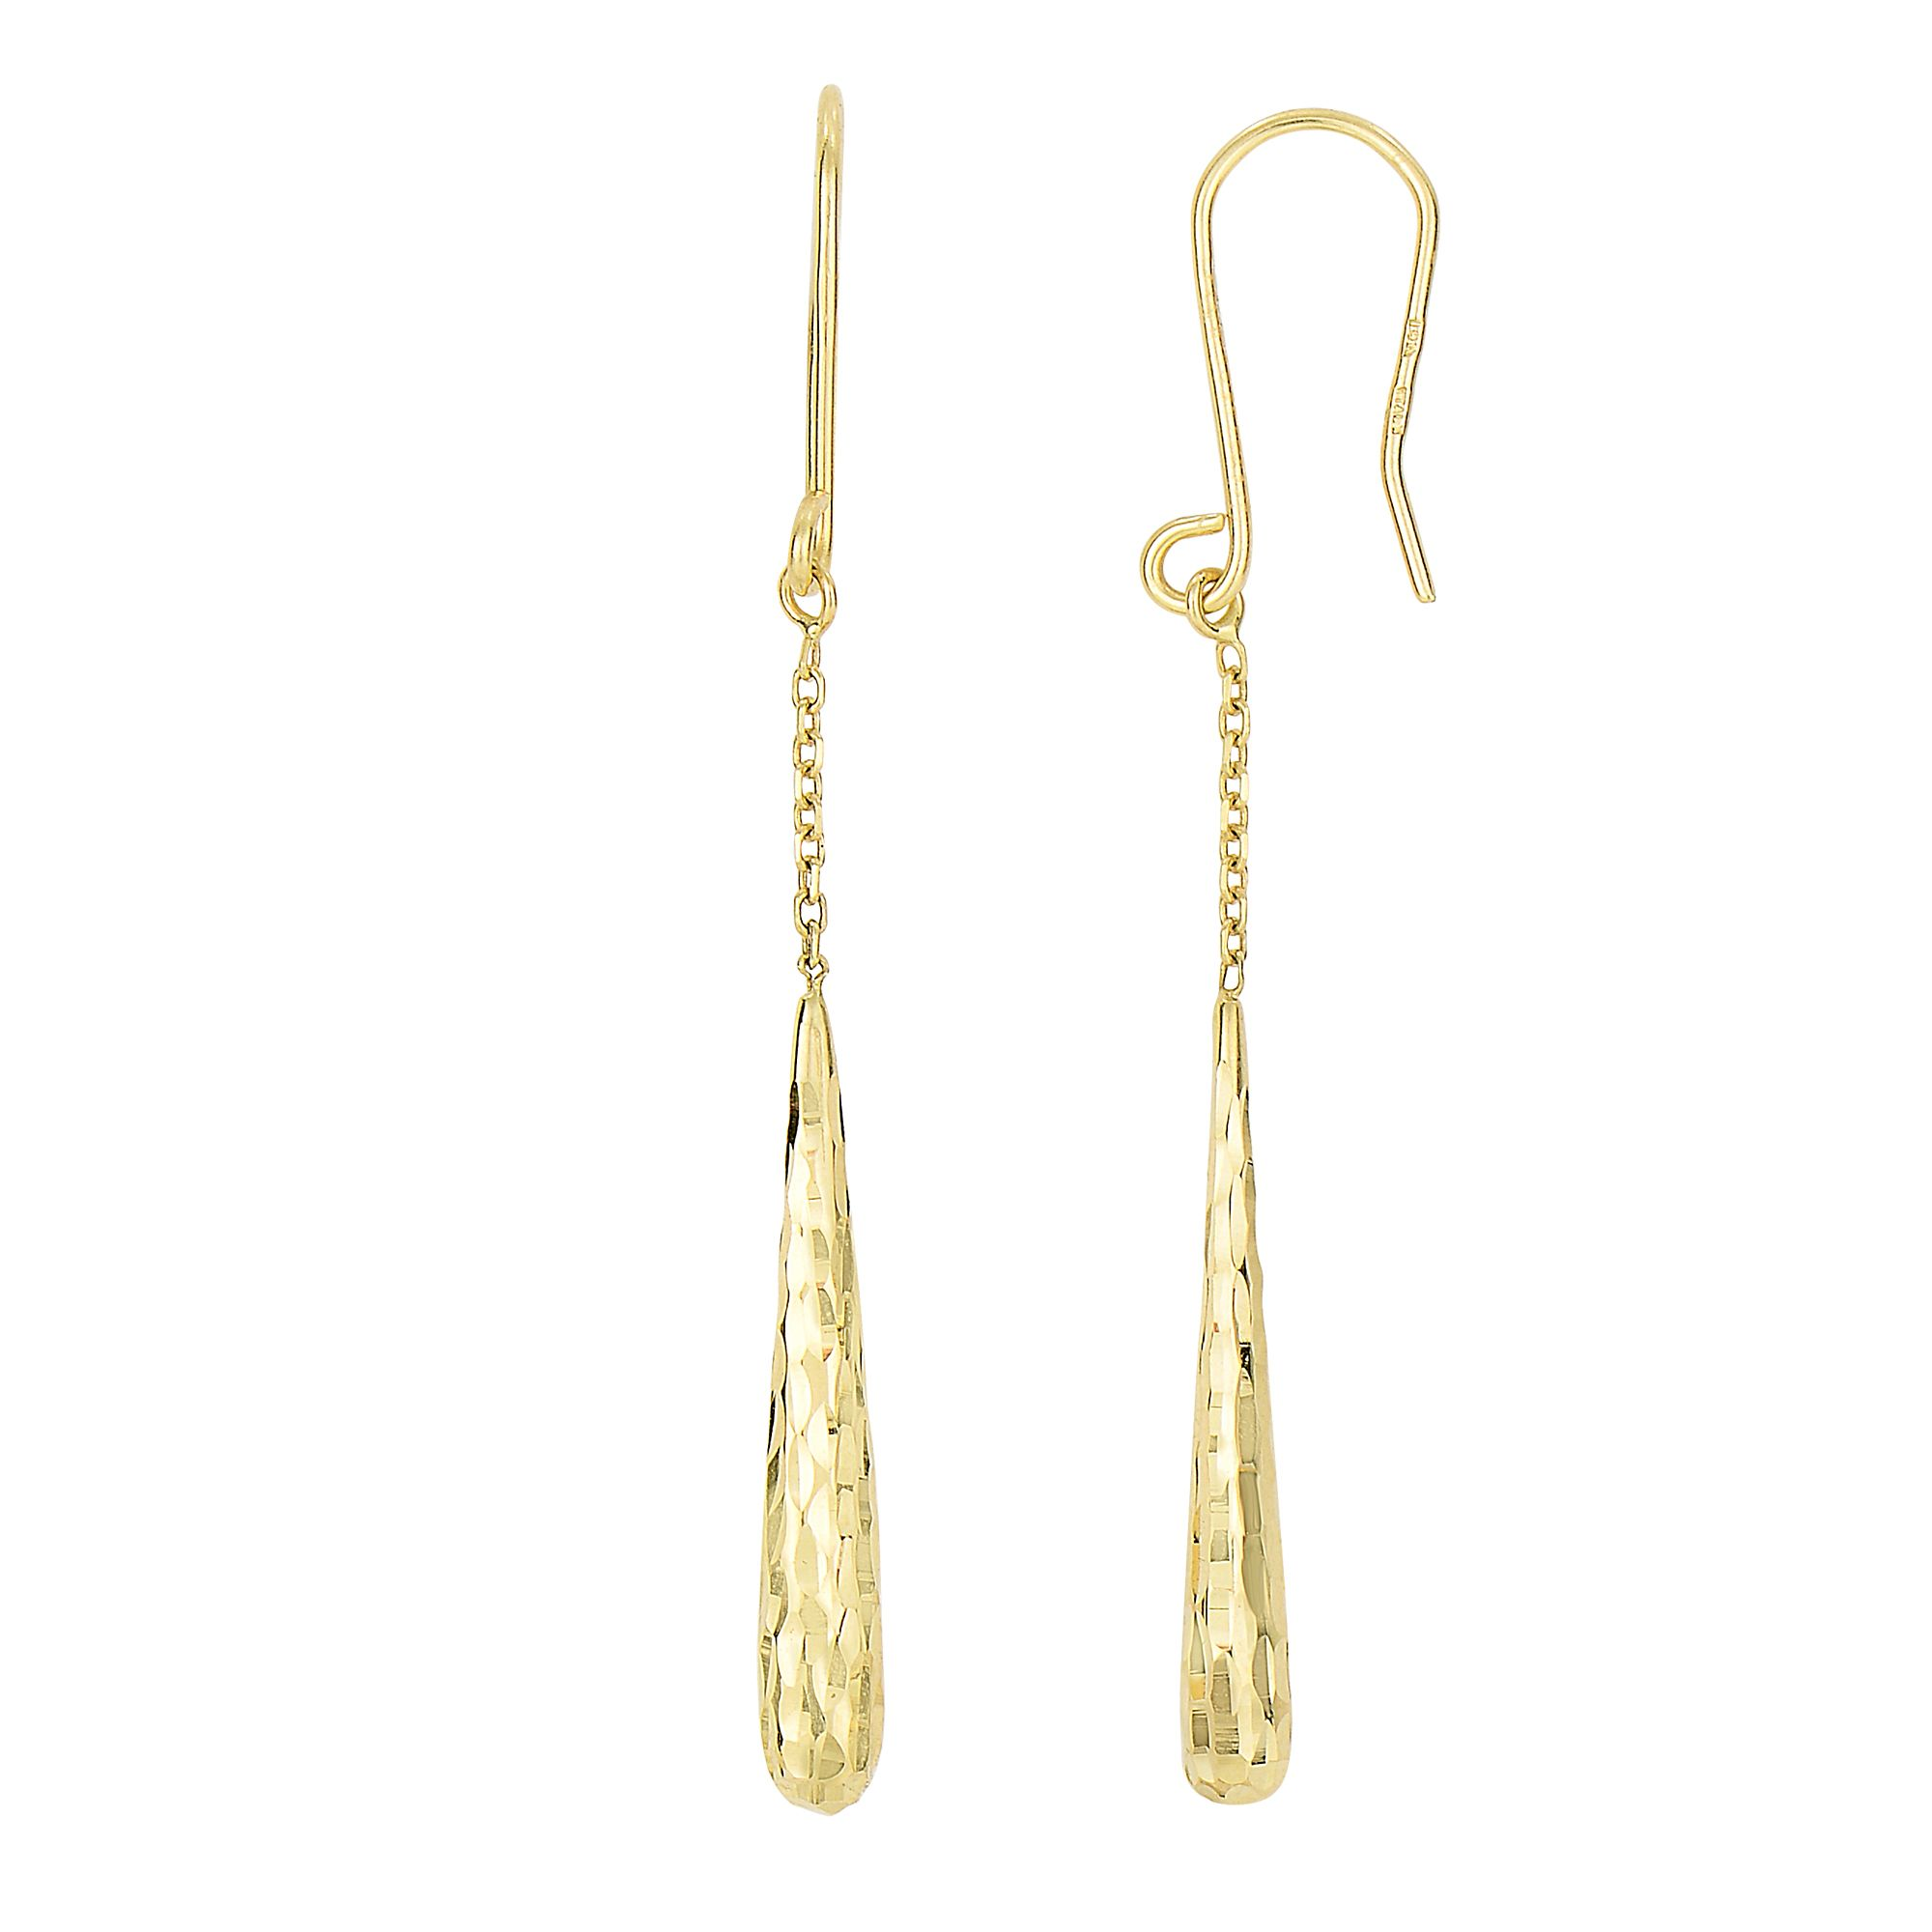 14 Karat Yellow Gold Long Tear Drop Diamond Cut Dangling Earrings